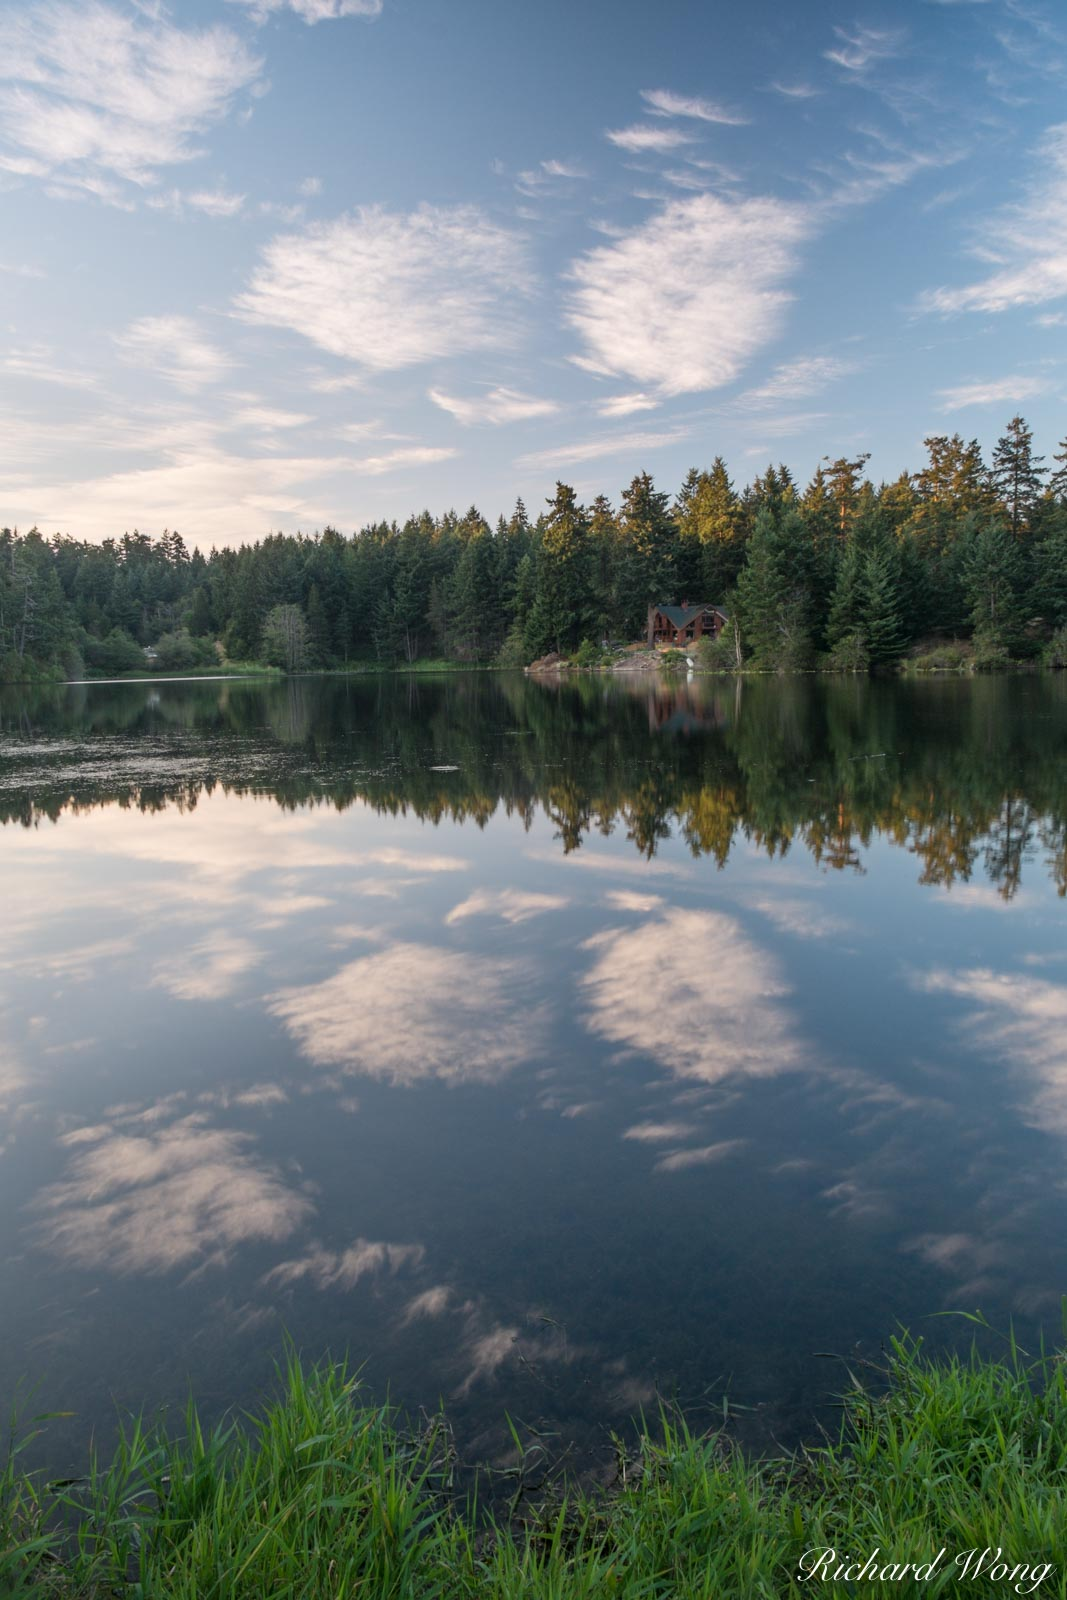 backroads san juan islands multisport tour, calm, dream lake, evening, lakedale resort campground, landscape, mpsc, nature, north america, outdoors, outside, pacific northwest, peaceful, reflections, , photo